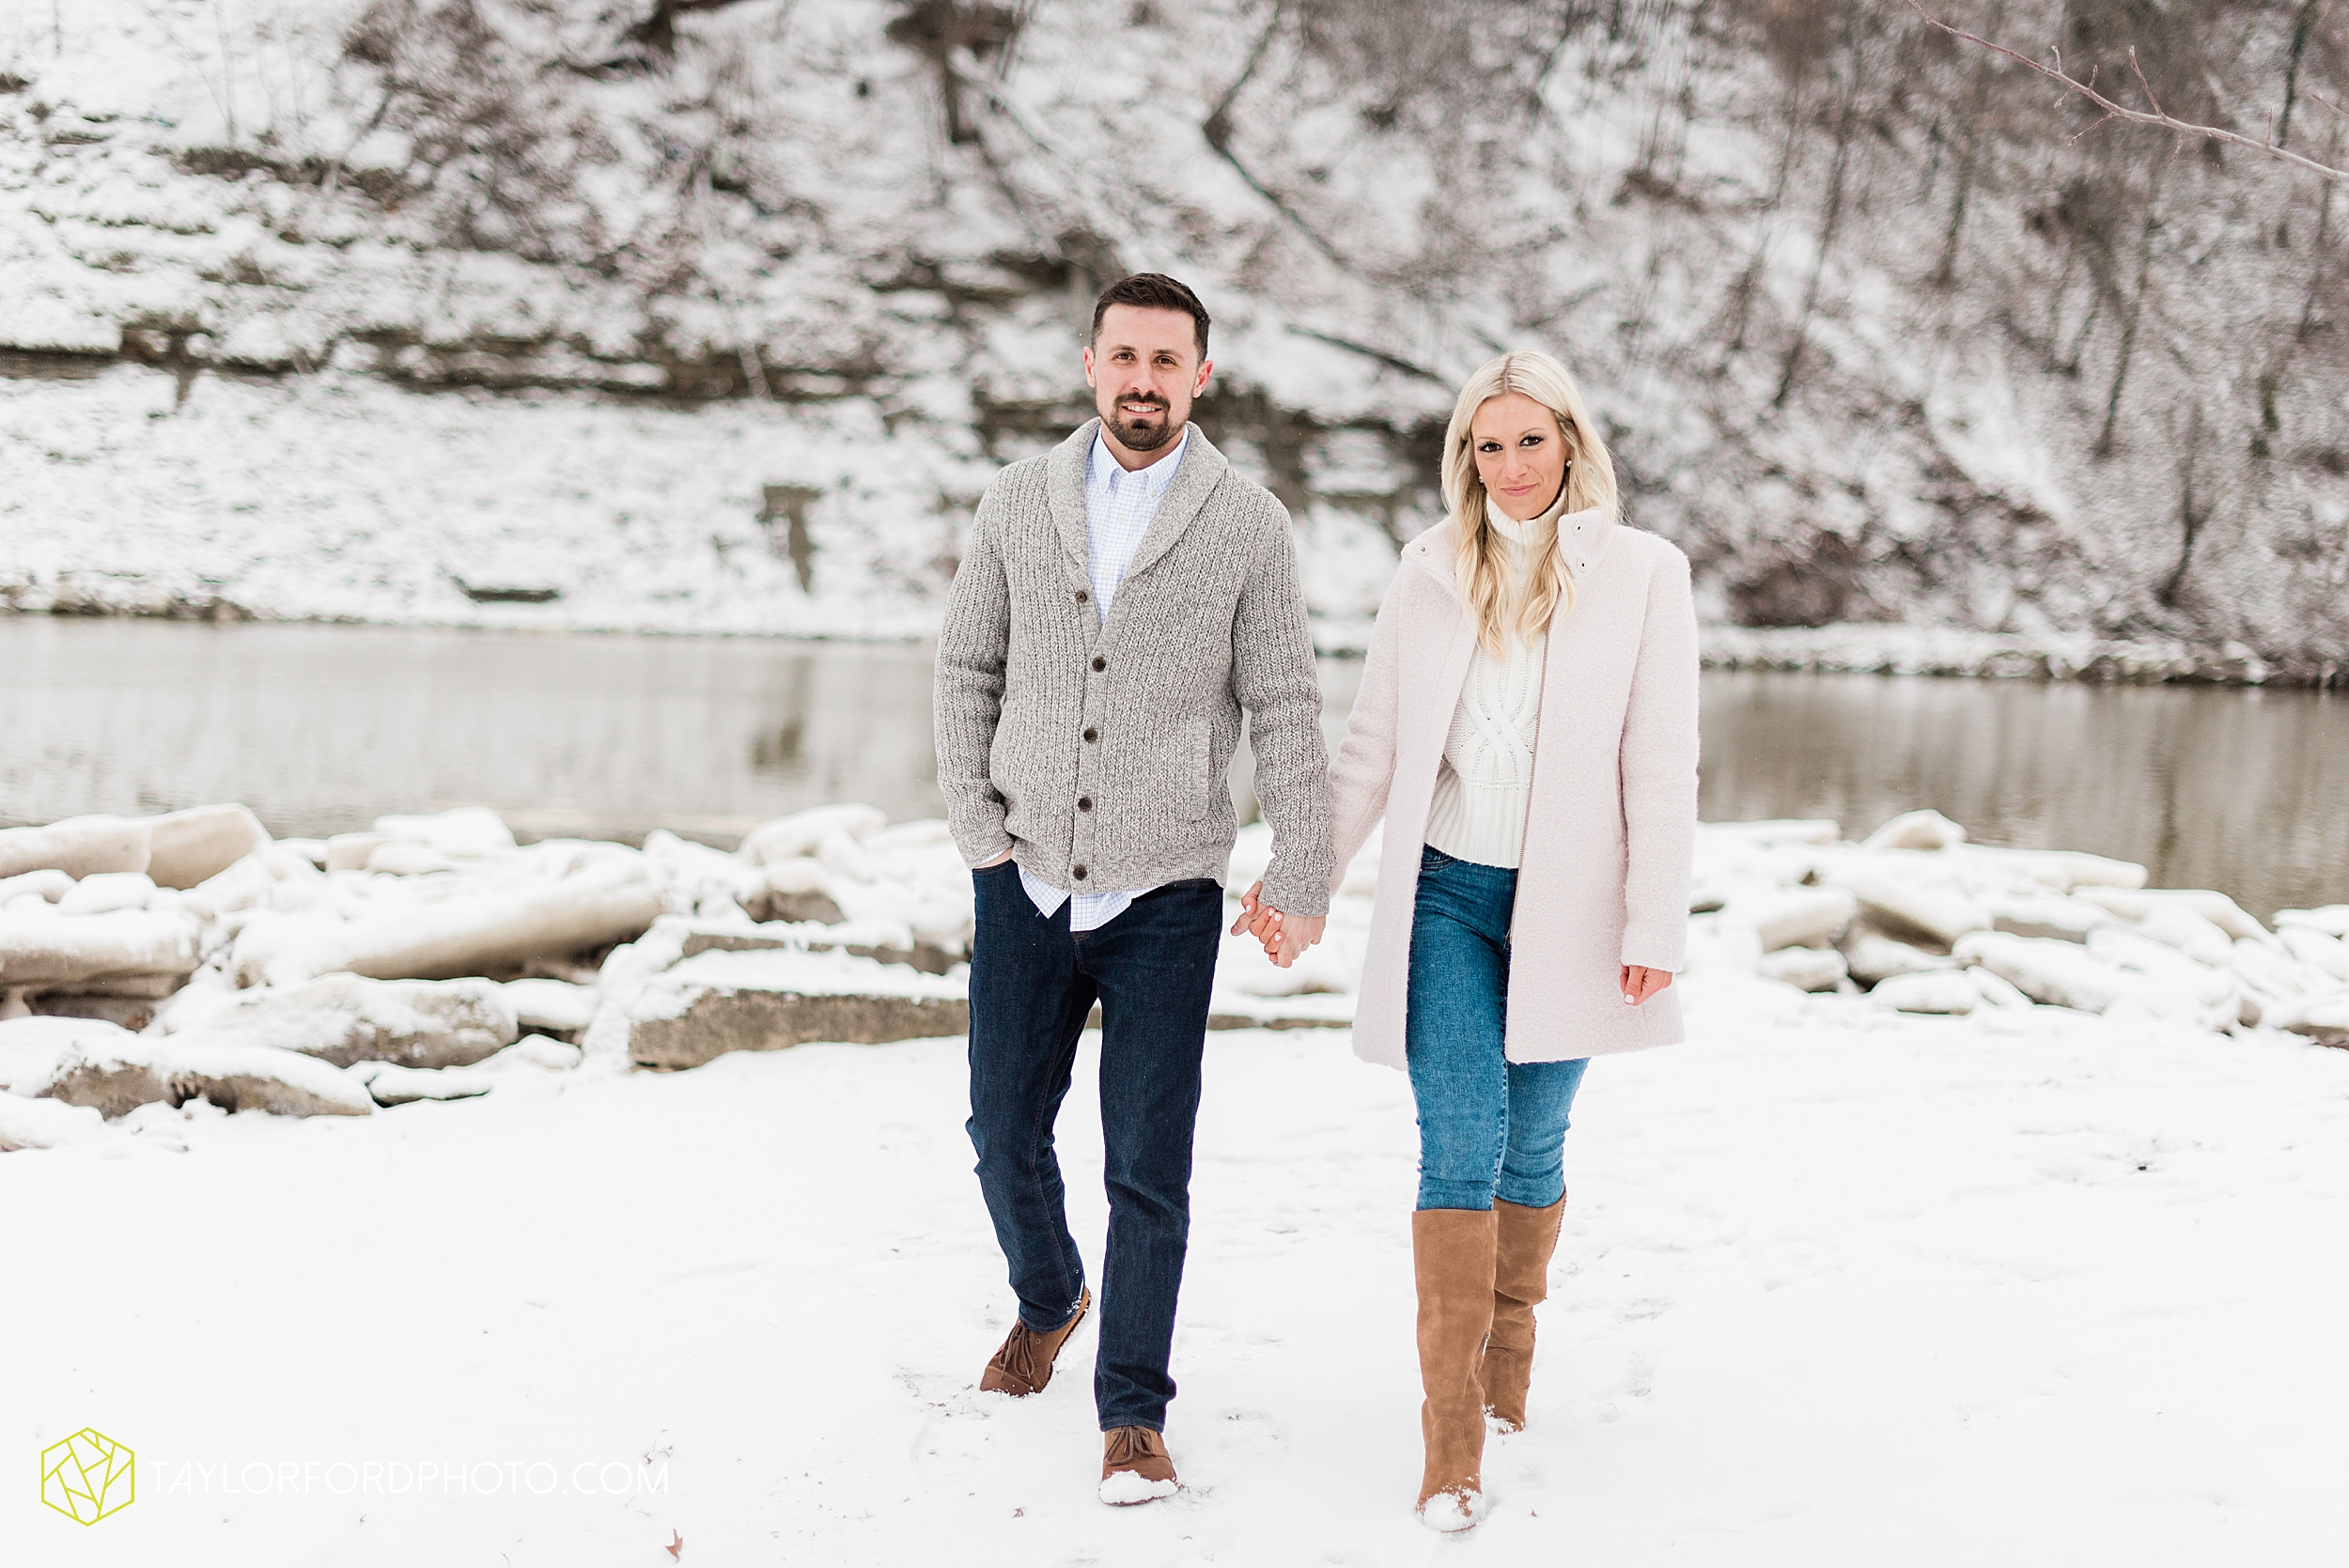 brittany-phil-downtown-cleveland-viaduct-the-flats-east-bank-rocky-river-reservation-engagement-photography-taylor-ford-hirschy-photographer_2452.jpg